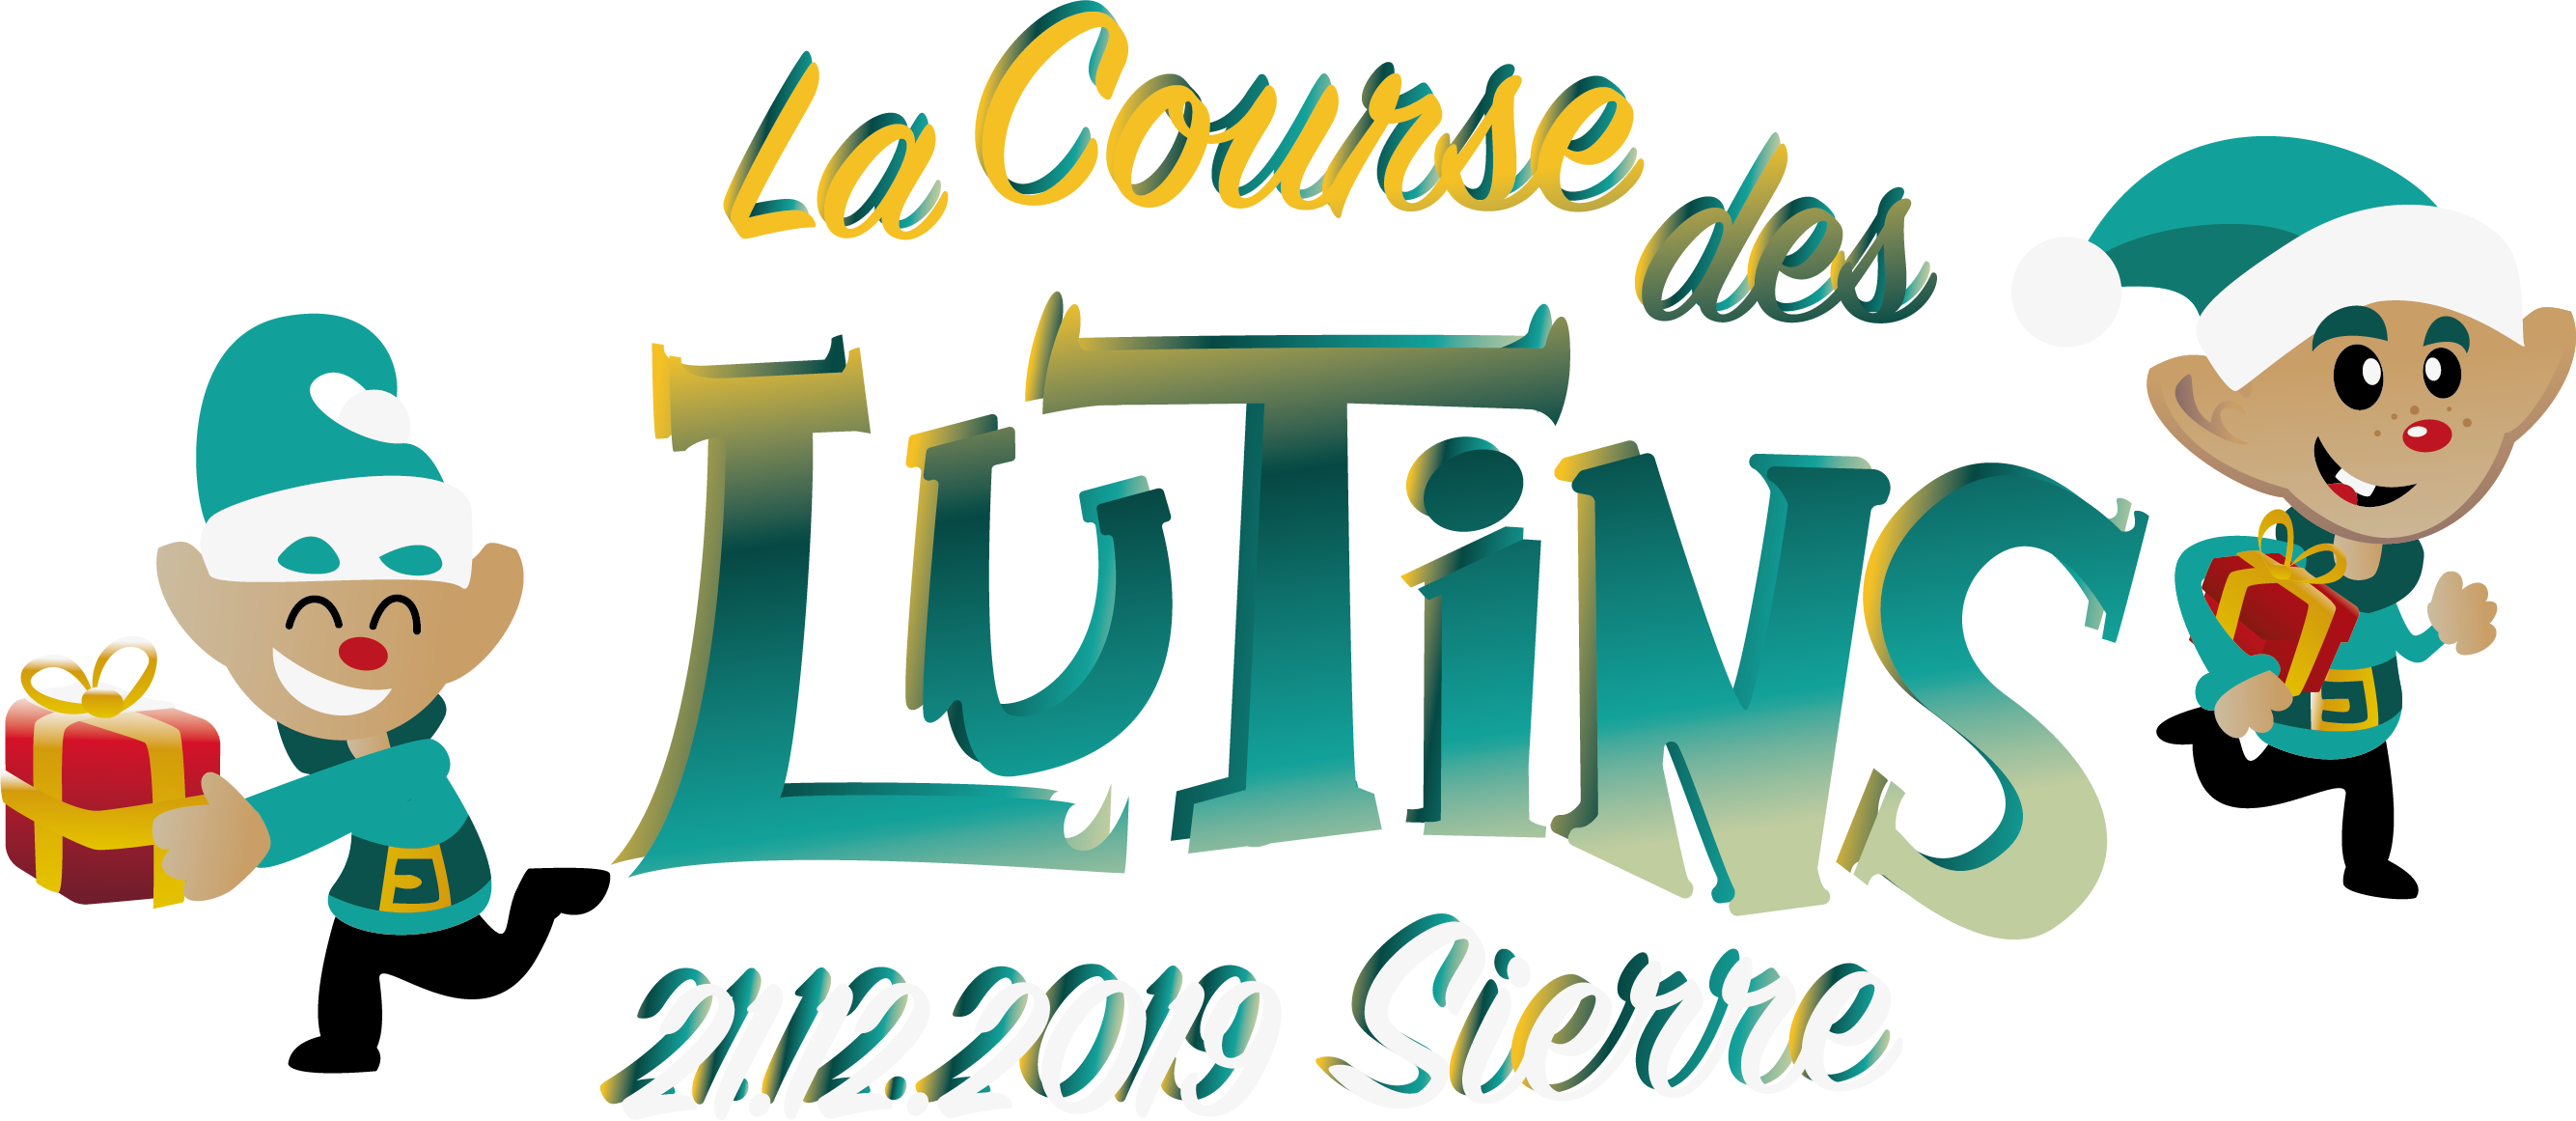 Media: Image_courses/2019/Lutinslogos2019.png